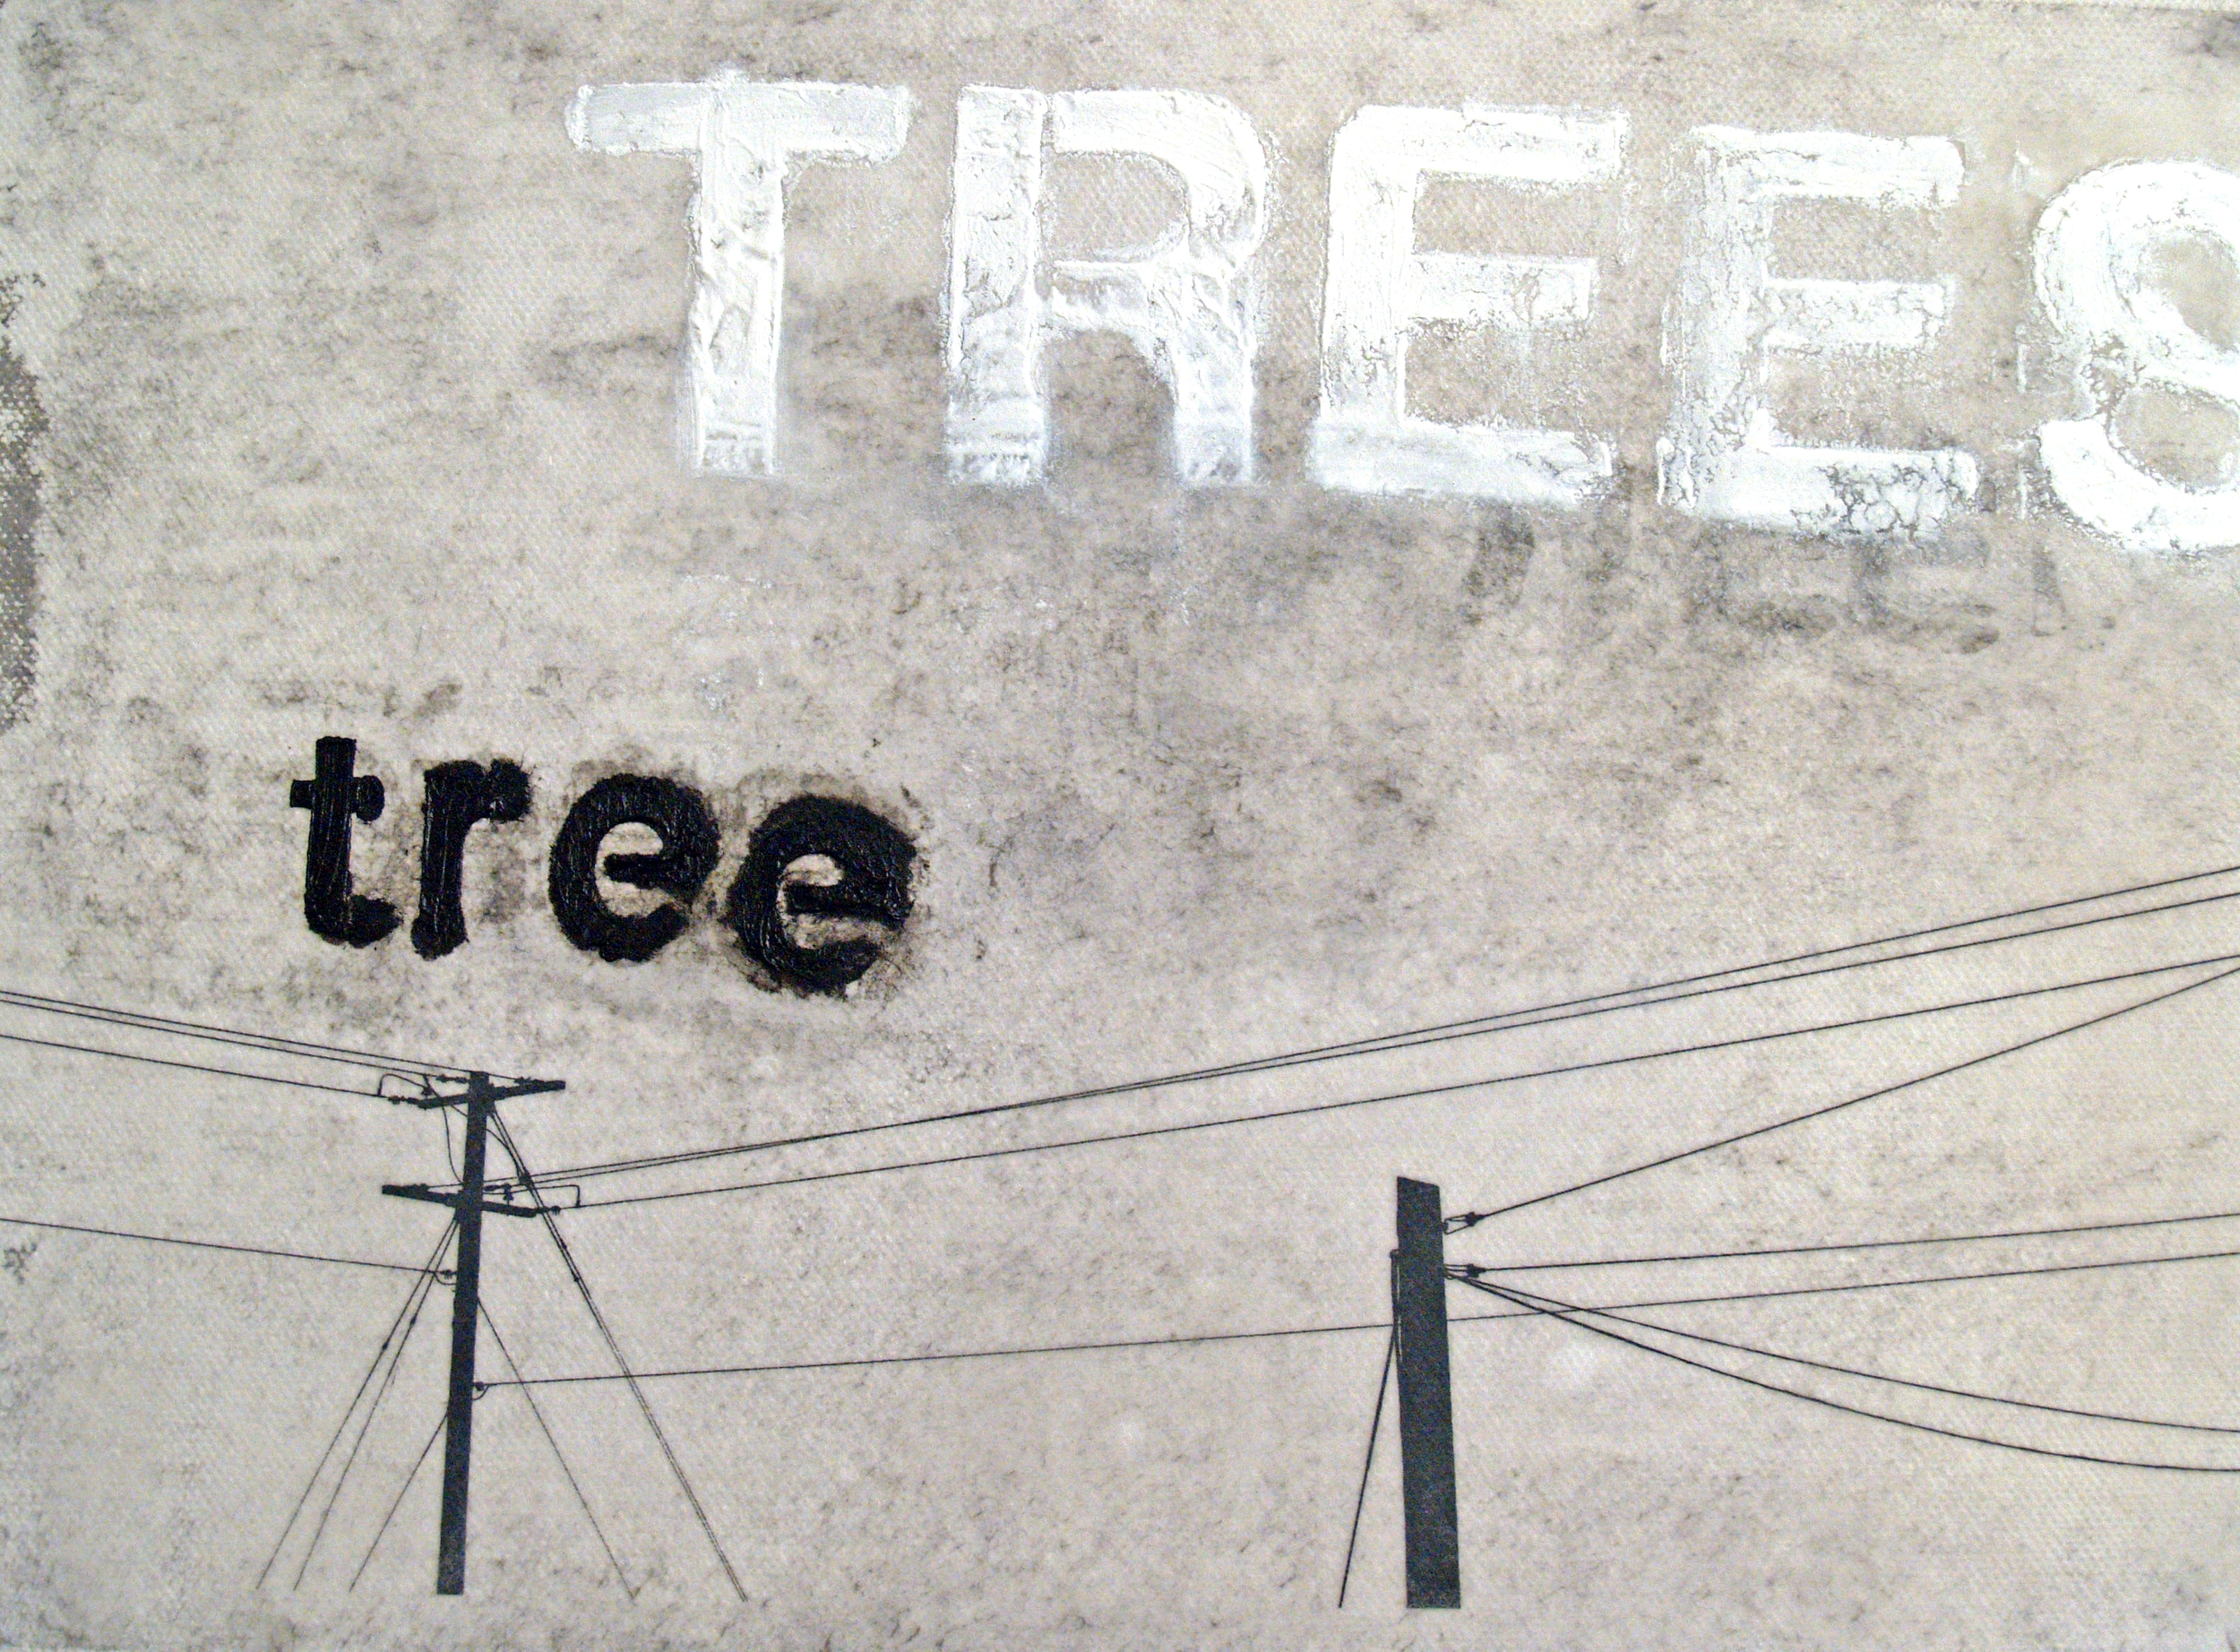 Encroaching City Series - Trees, oil, mixed media on canvas - 12c12 inches